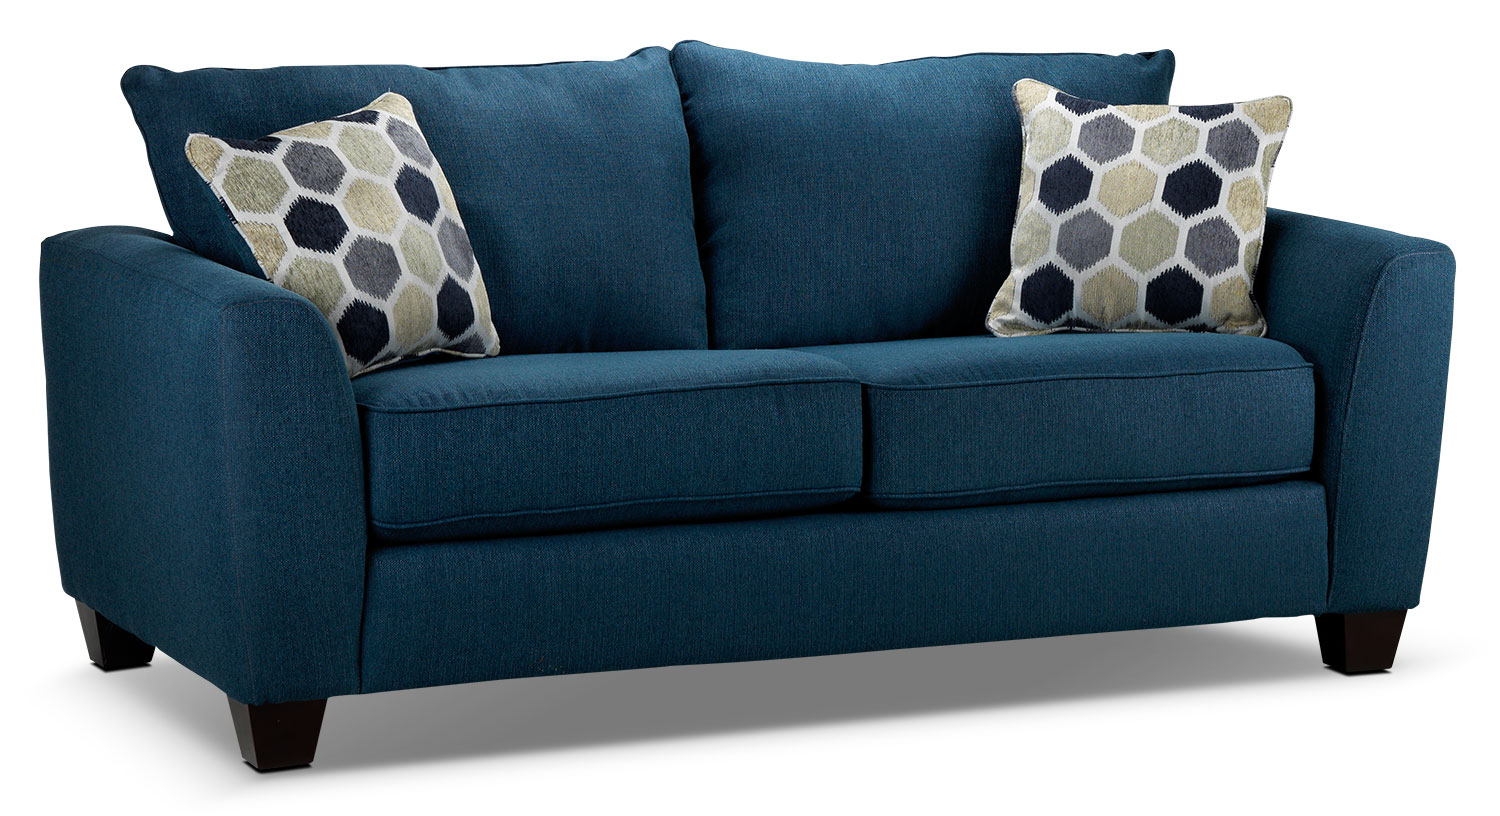 Living Room Furniture - Heritage Loveseat - Navy